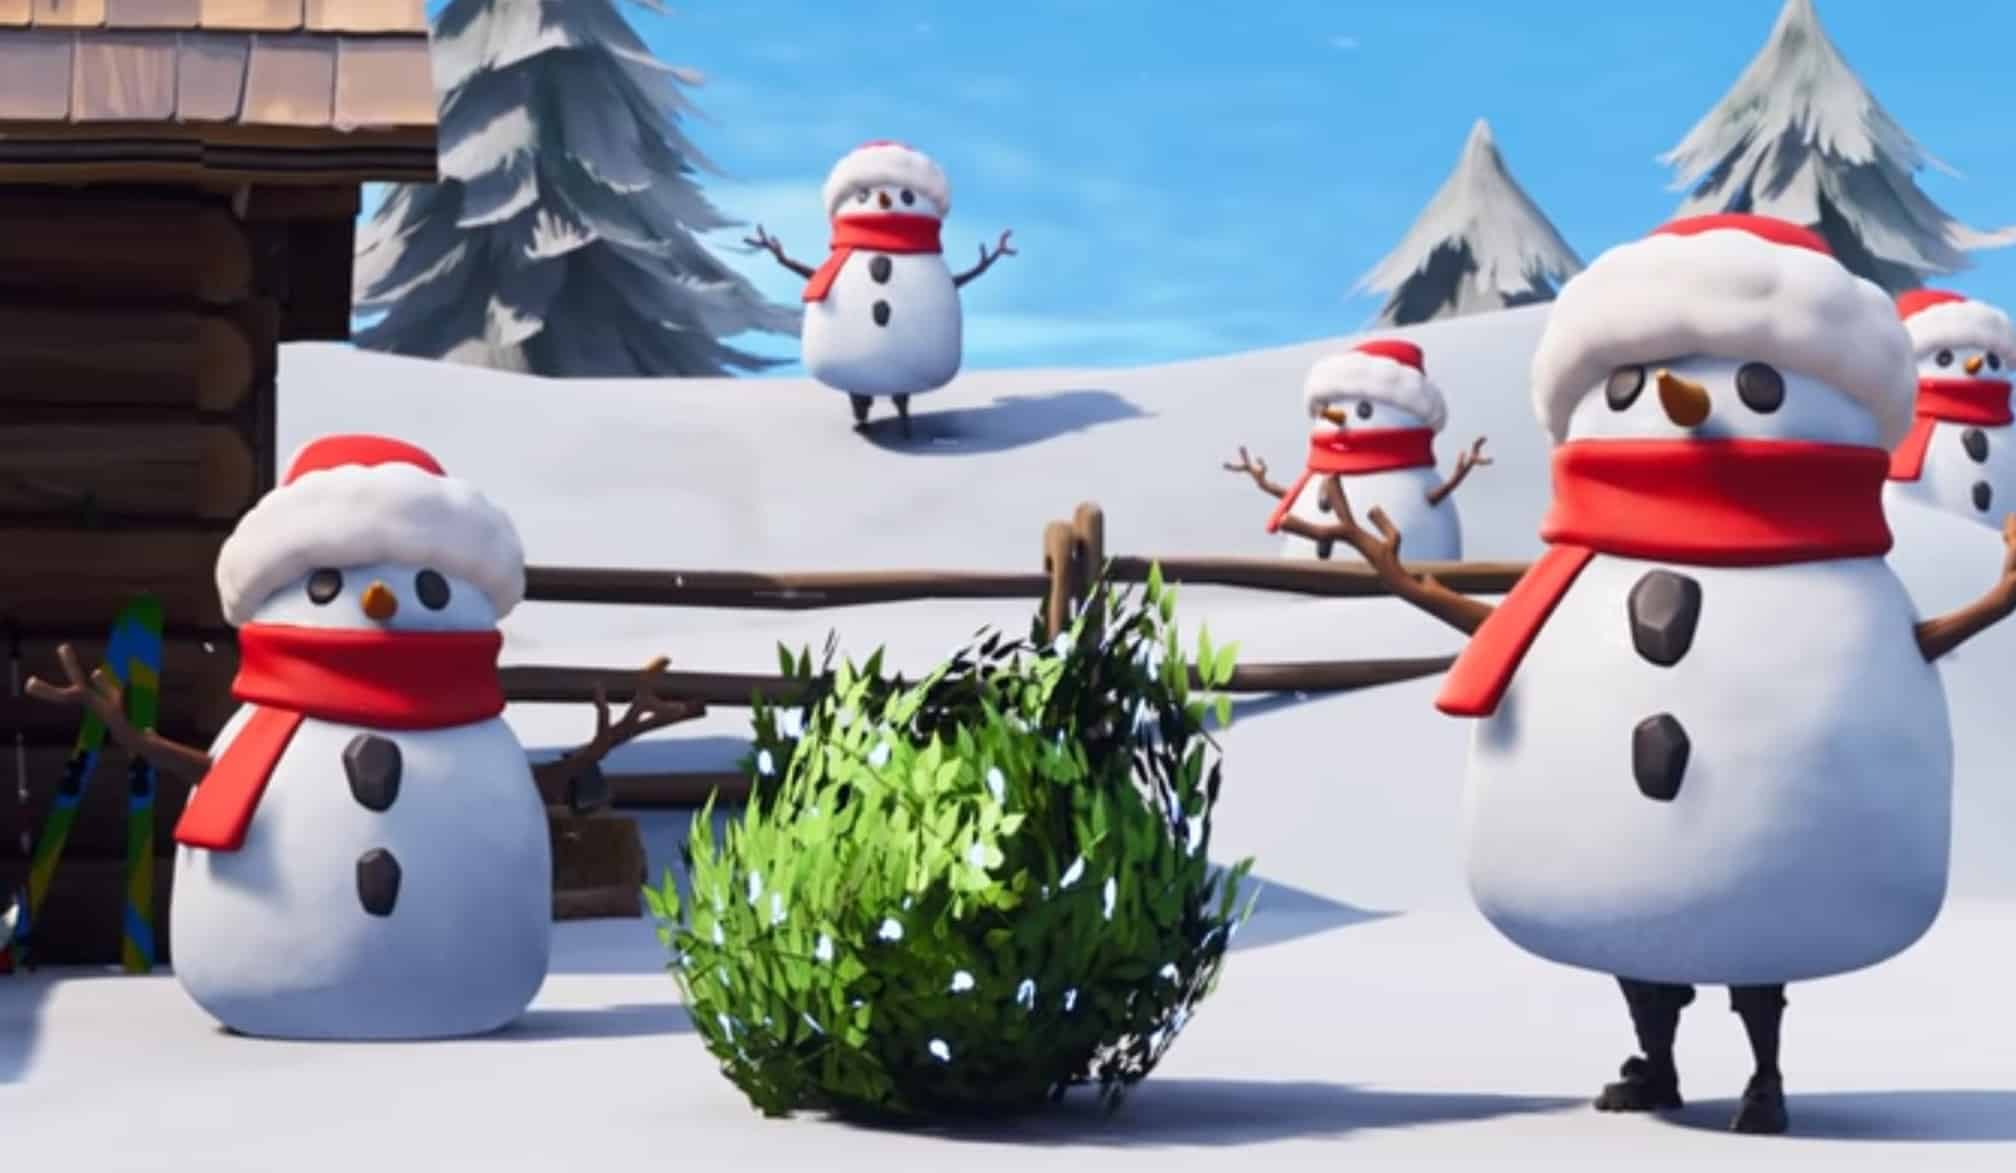 Fortnite Sneaky Snowman And Sniper Shootout Ltm Released Glitched